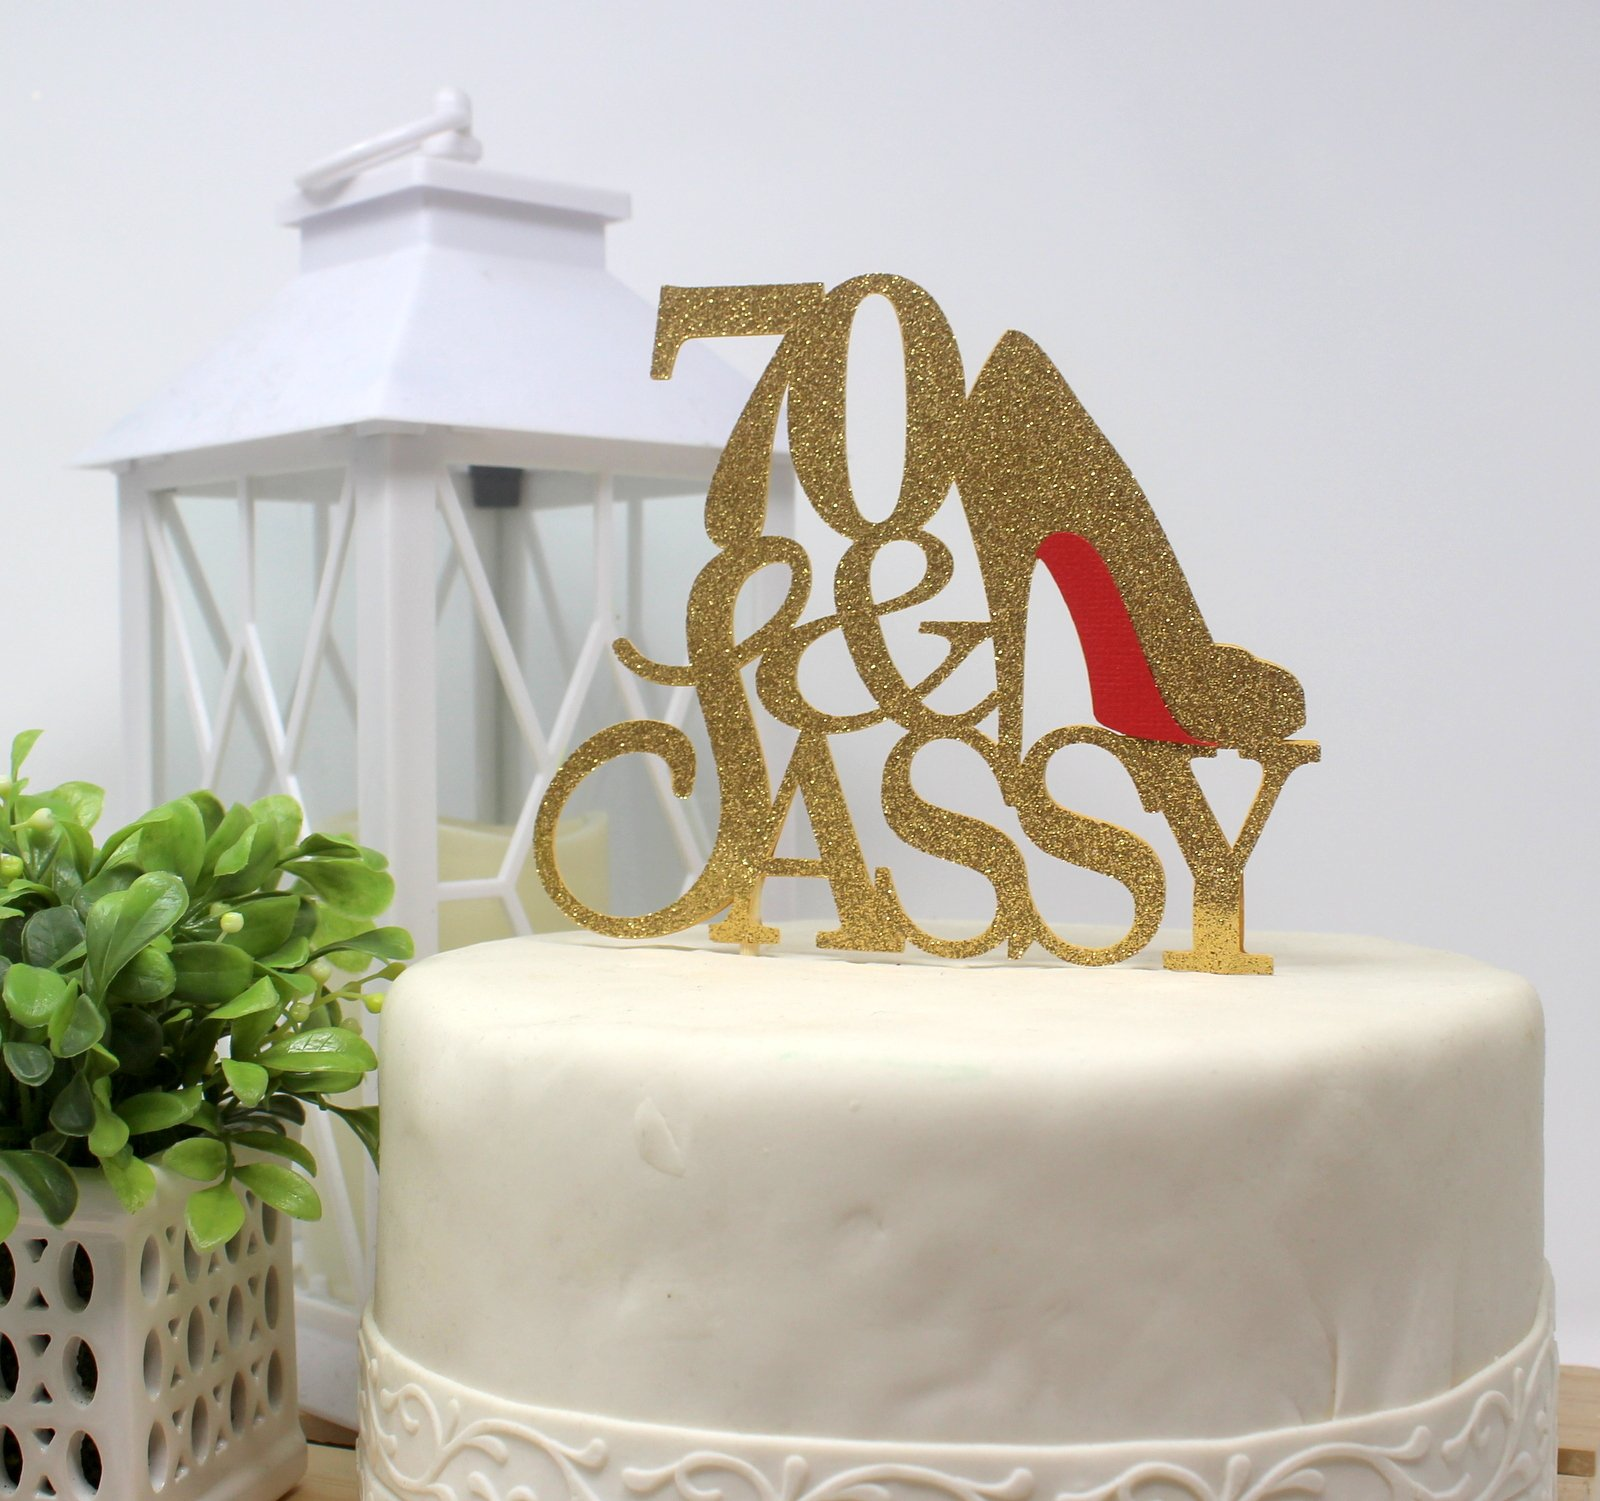 All About Details CAT70SAGOL 70 & Sassy Cake Topper (Gold), 6in wide and 5in tall with 2-pcs of 4in wood skewers by All About Details (Image #4)